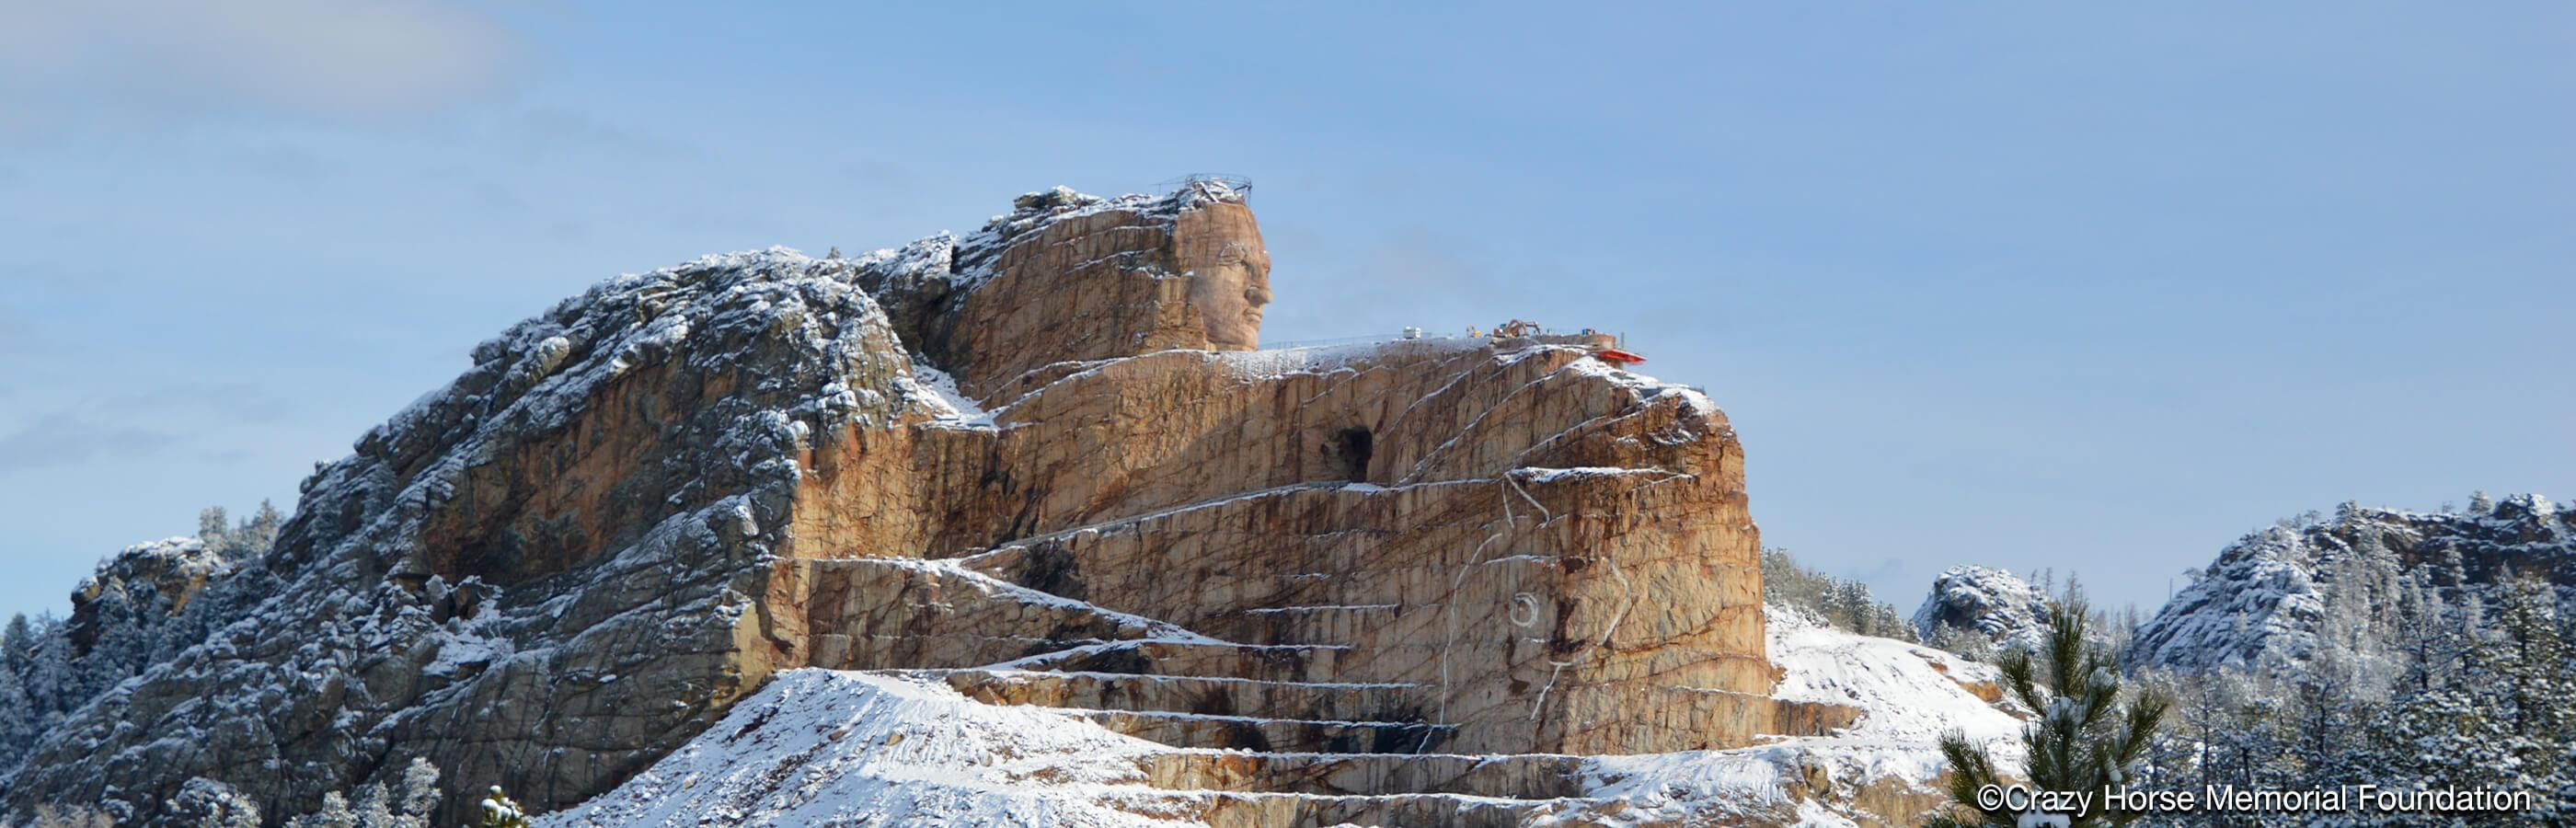 Crazy Horse memorial during the winter